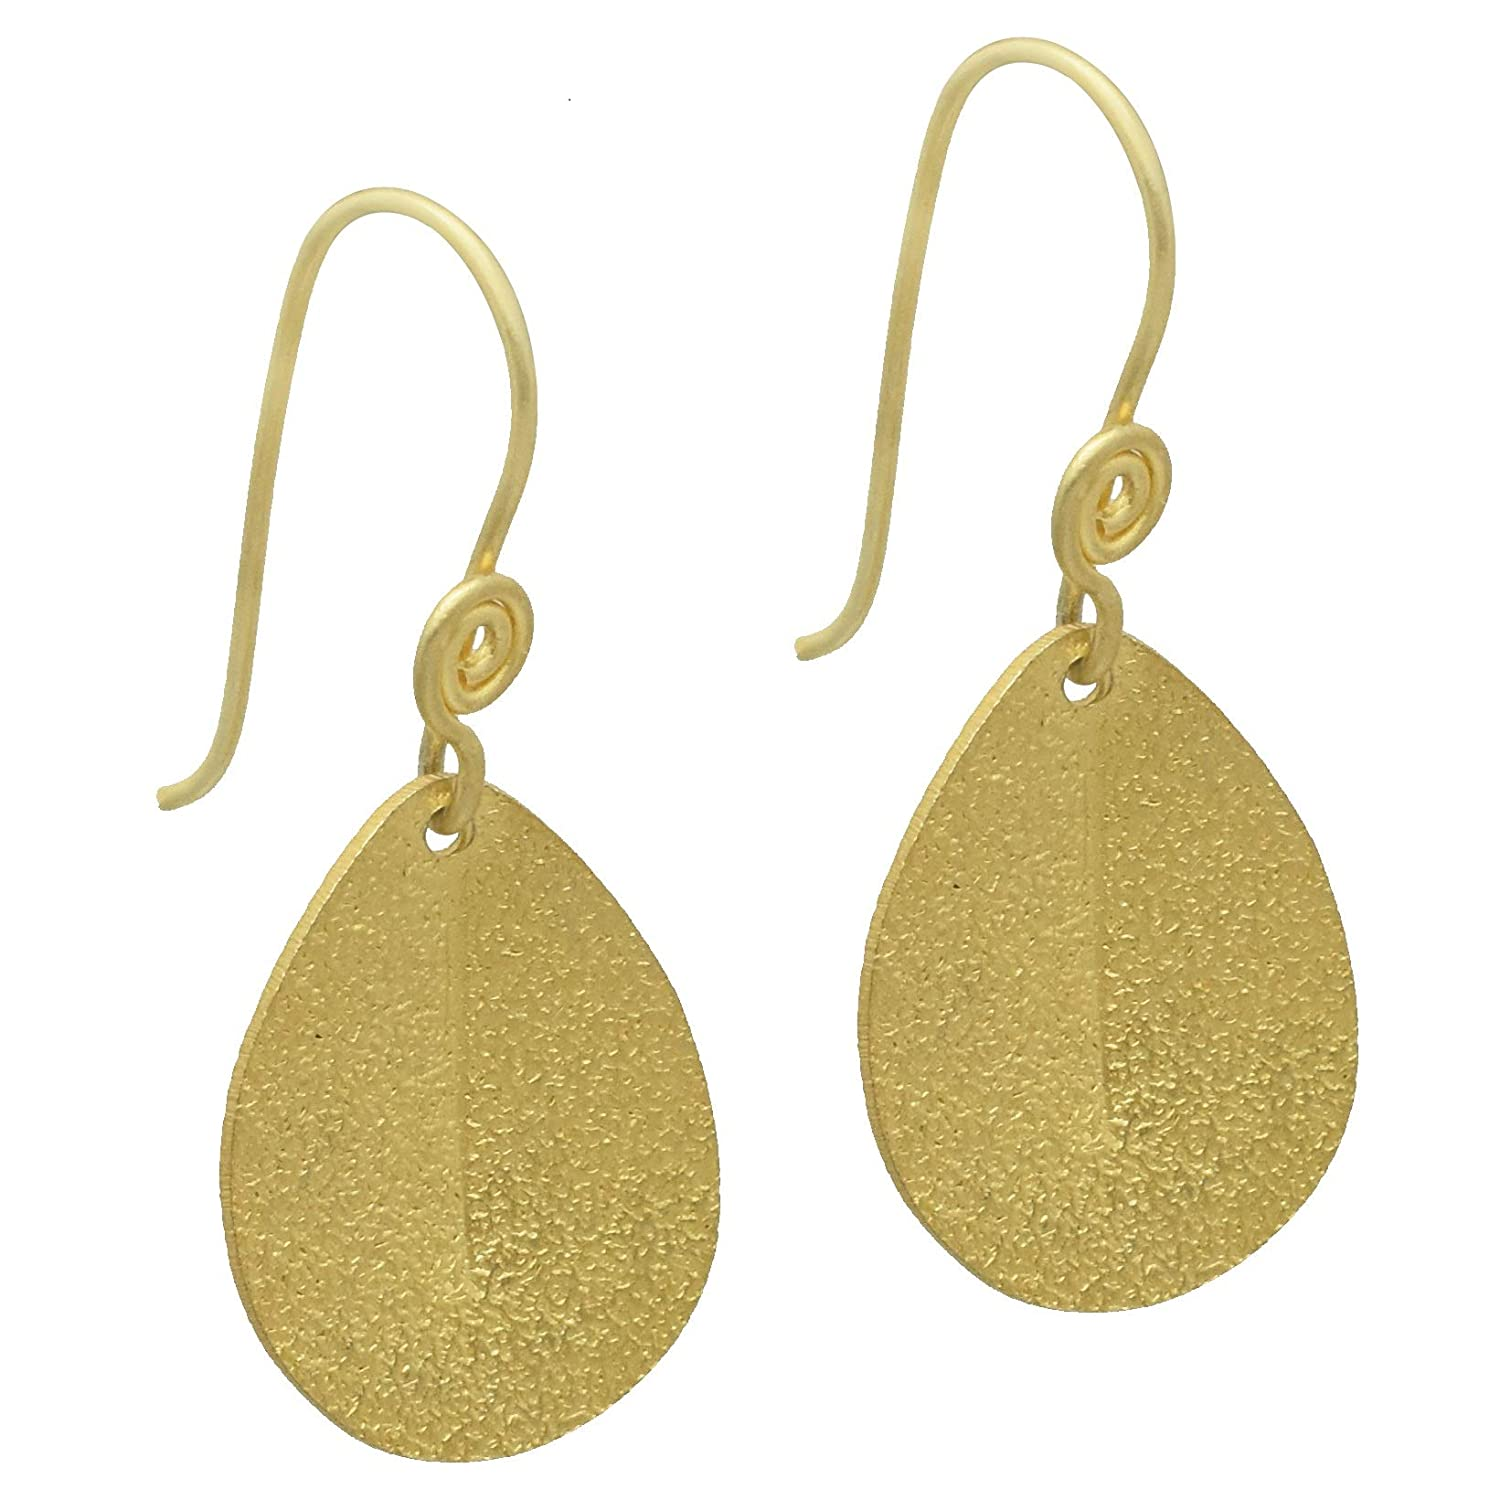 The V Collection Earrings 22k Gold Plated Drop Handmade Dangling Earrings for Women and Girls